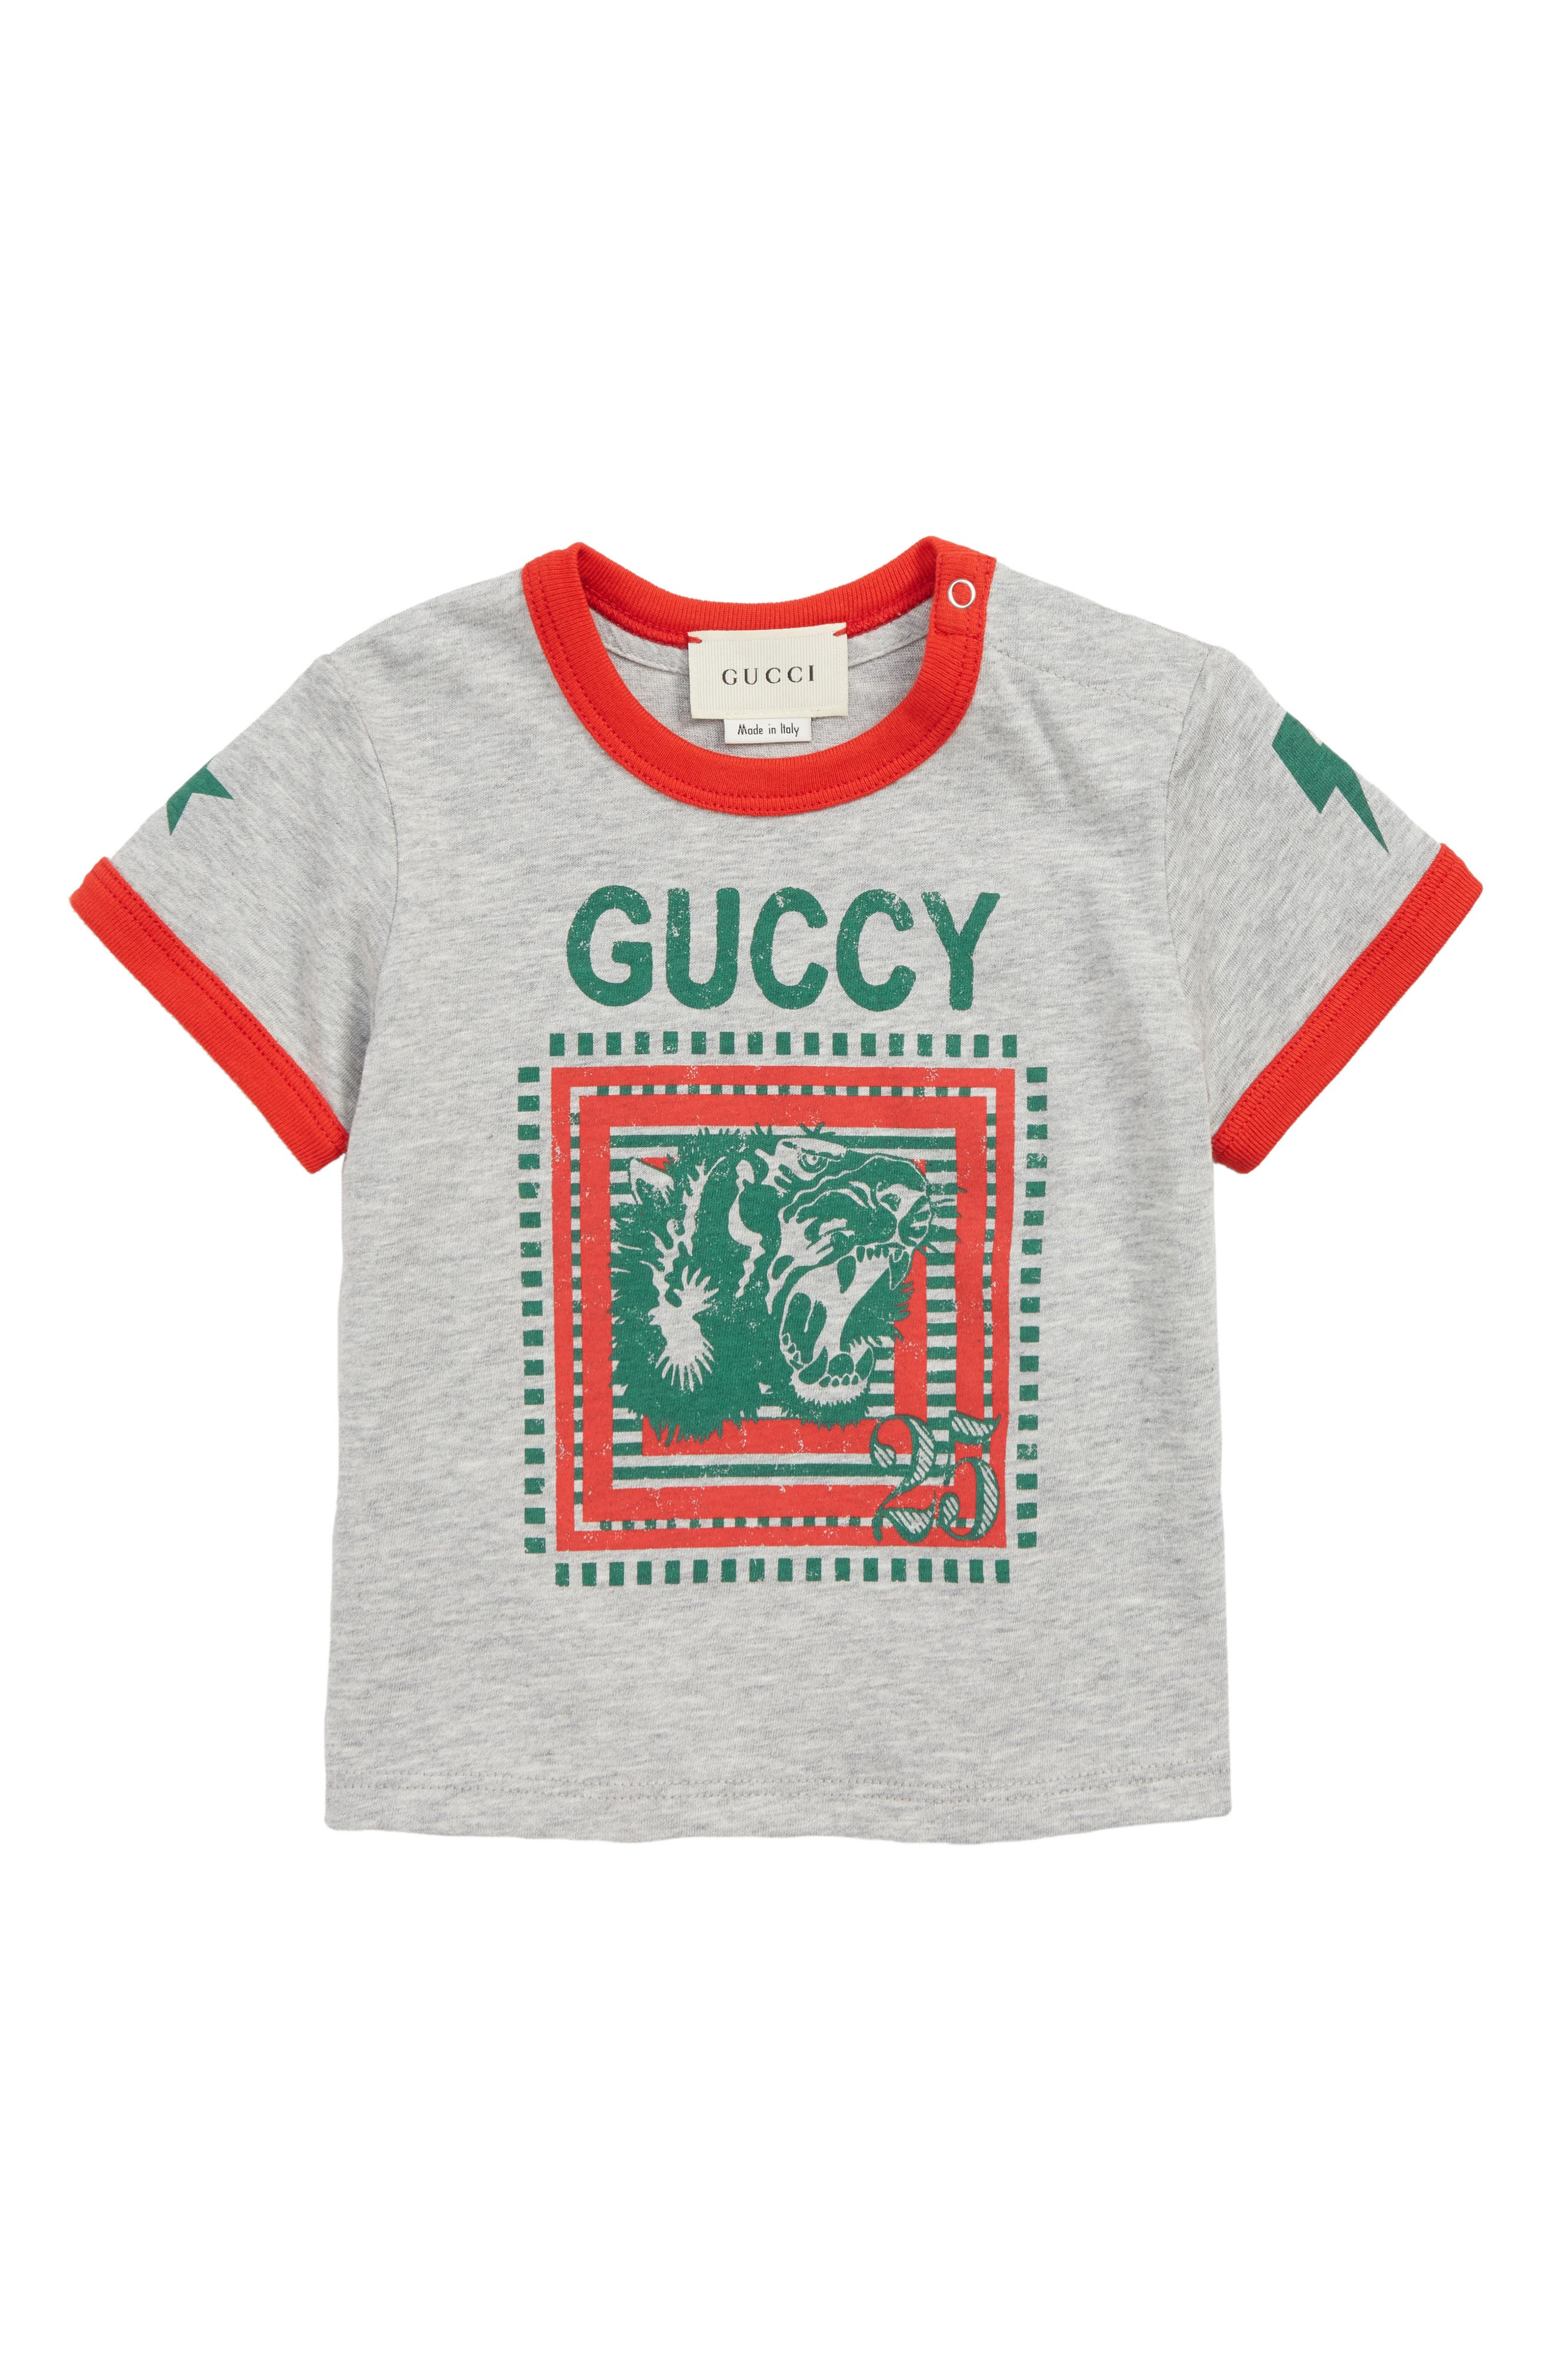 Guccy T-Shirt,                         Main,                         color, LIGHT GREY/ CANDY APPLE